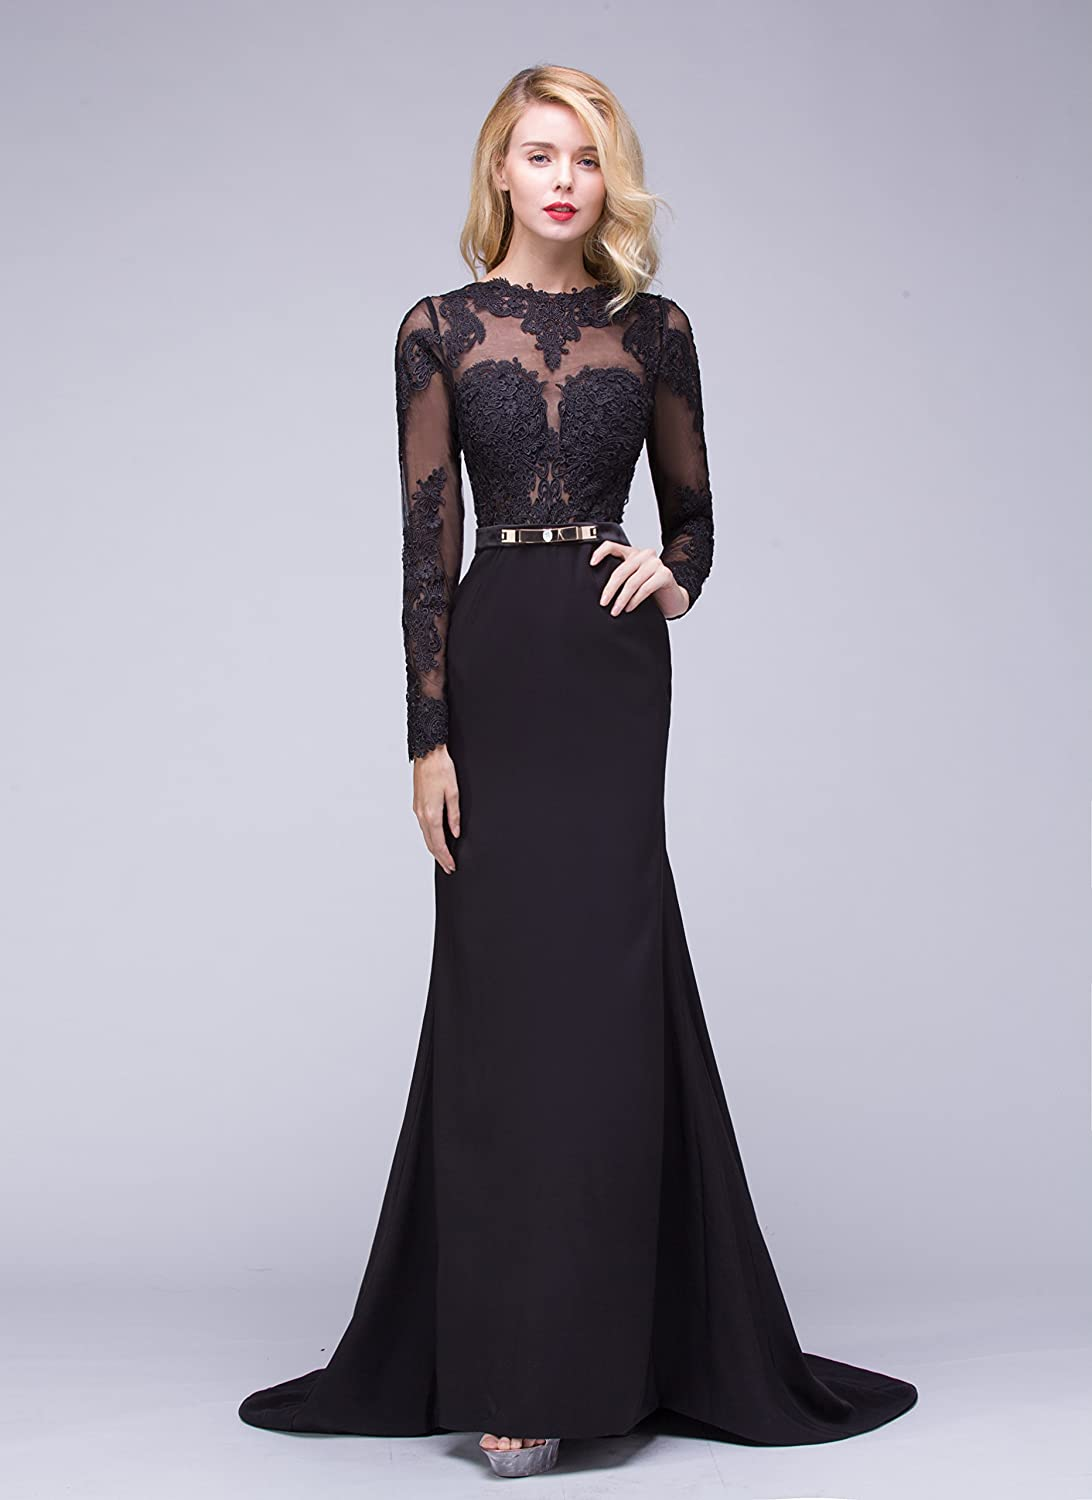 Ok Dress Long Sleeve Lace Mermaid Wedding Prom Dresses 2015 ...